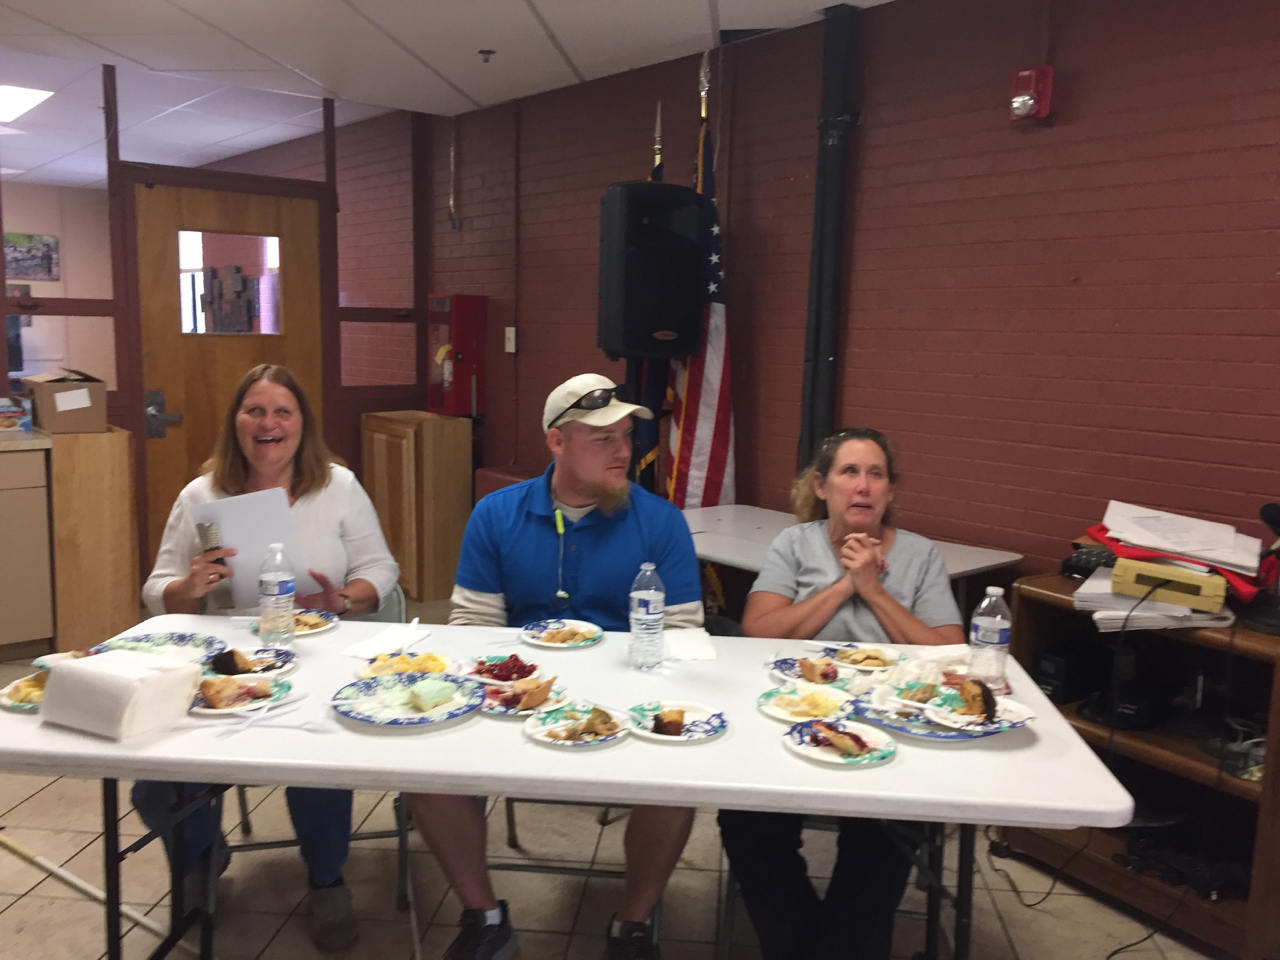 Julie, Daniel and Vicki Judging the pie contest